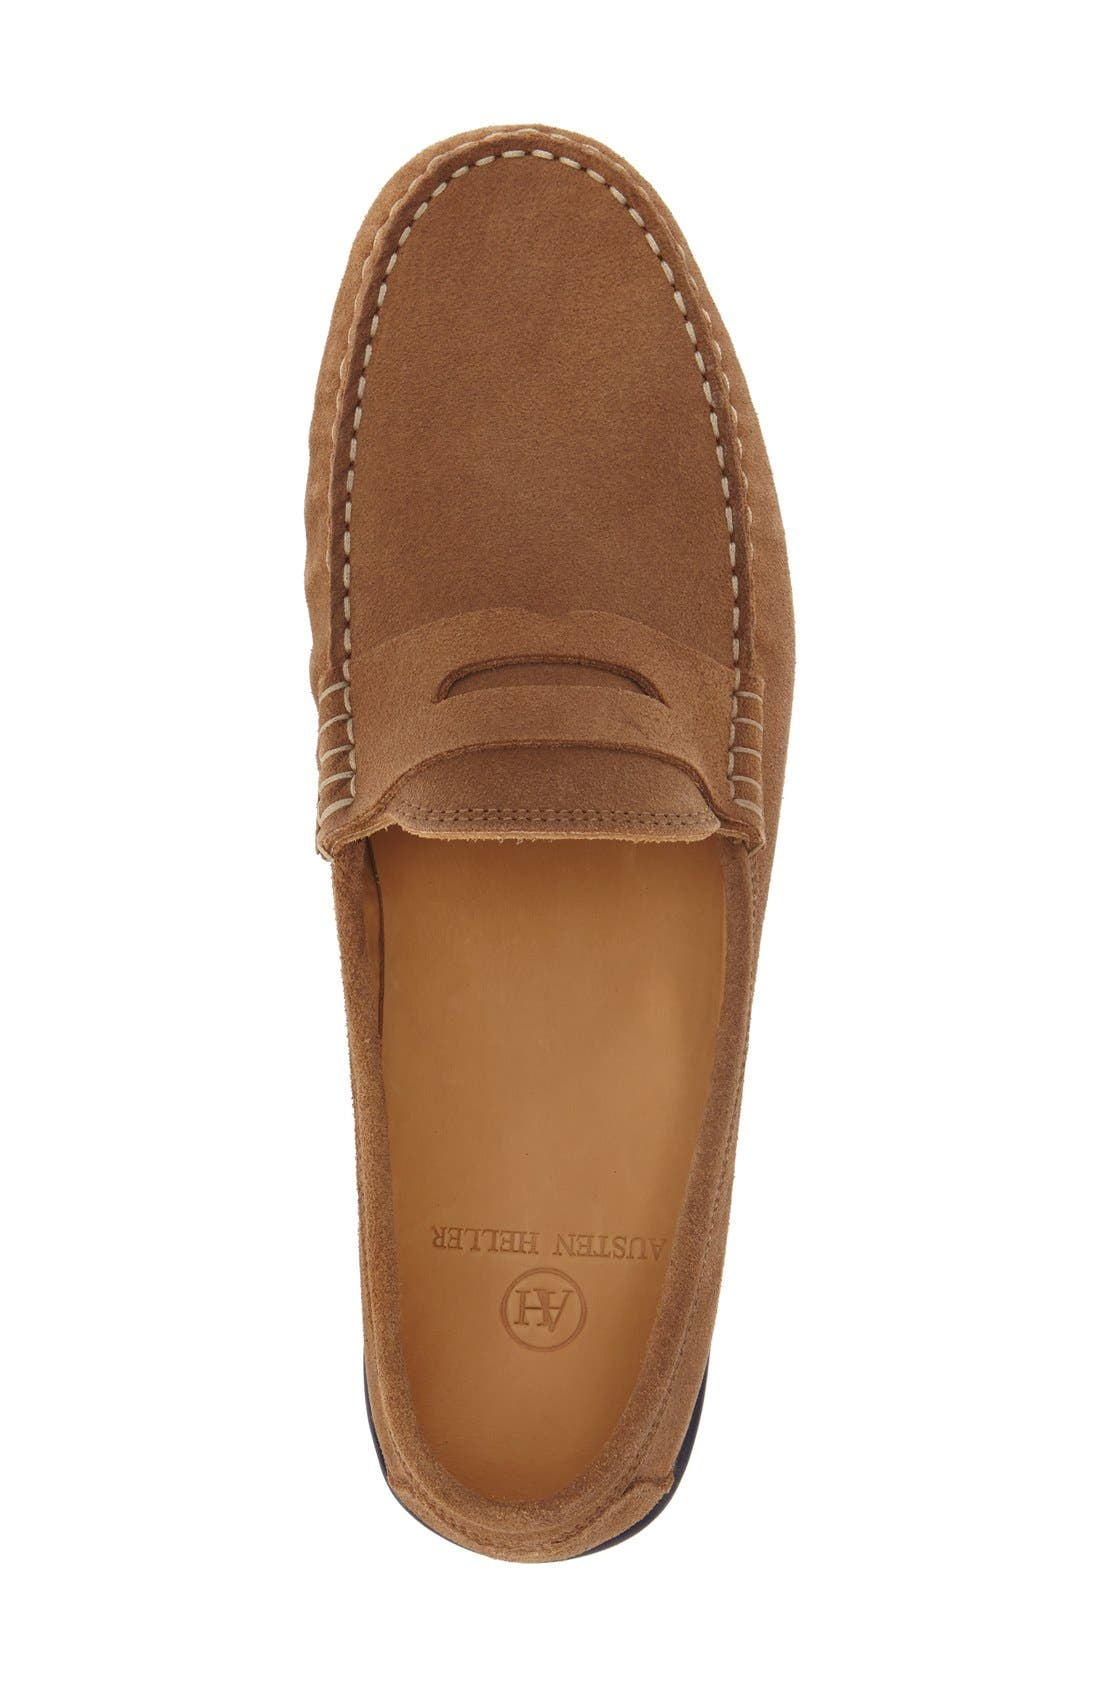 Alternate Image 3  - Austen Heller 'Parkers' Penny Loafer (Men)